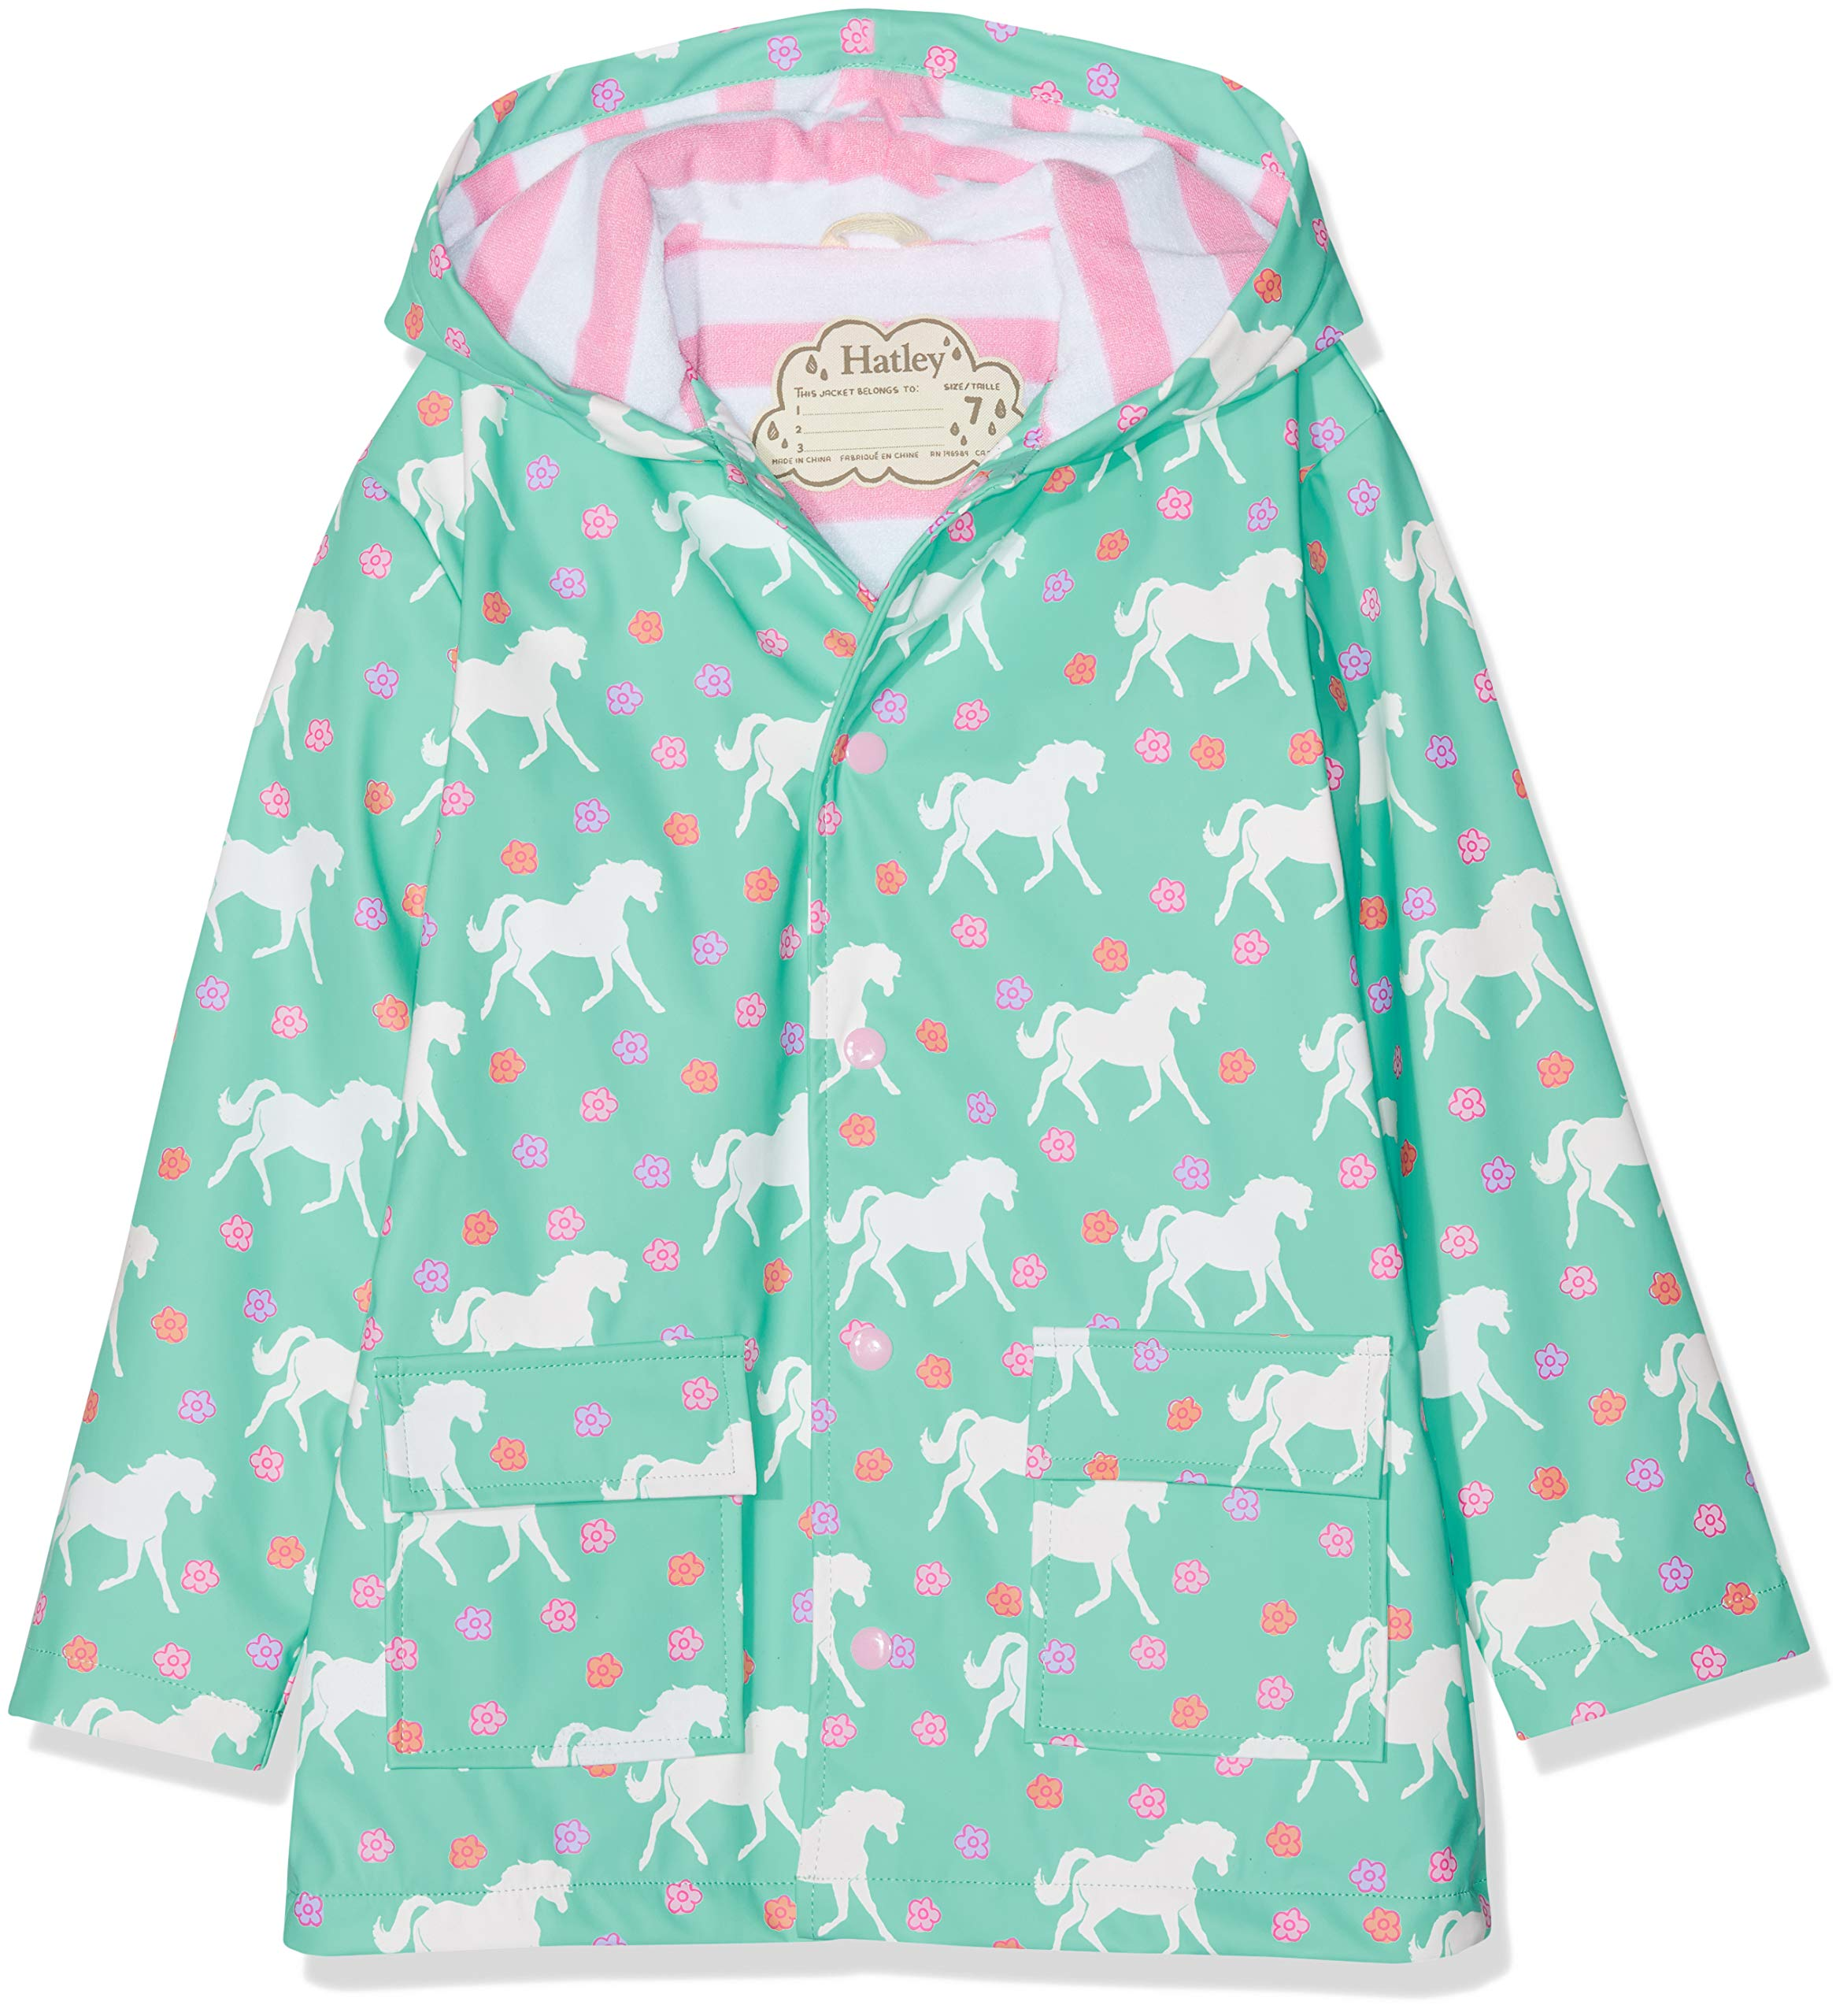 Hatley Girls' Little Printed Raincoats, Color Changing Galloping Horses, 4 by Hatley